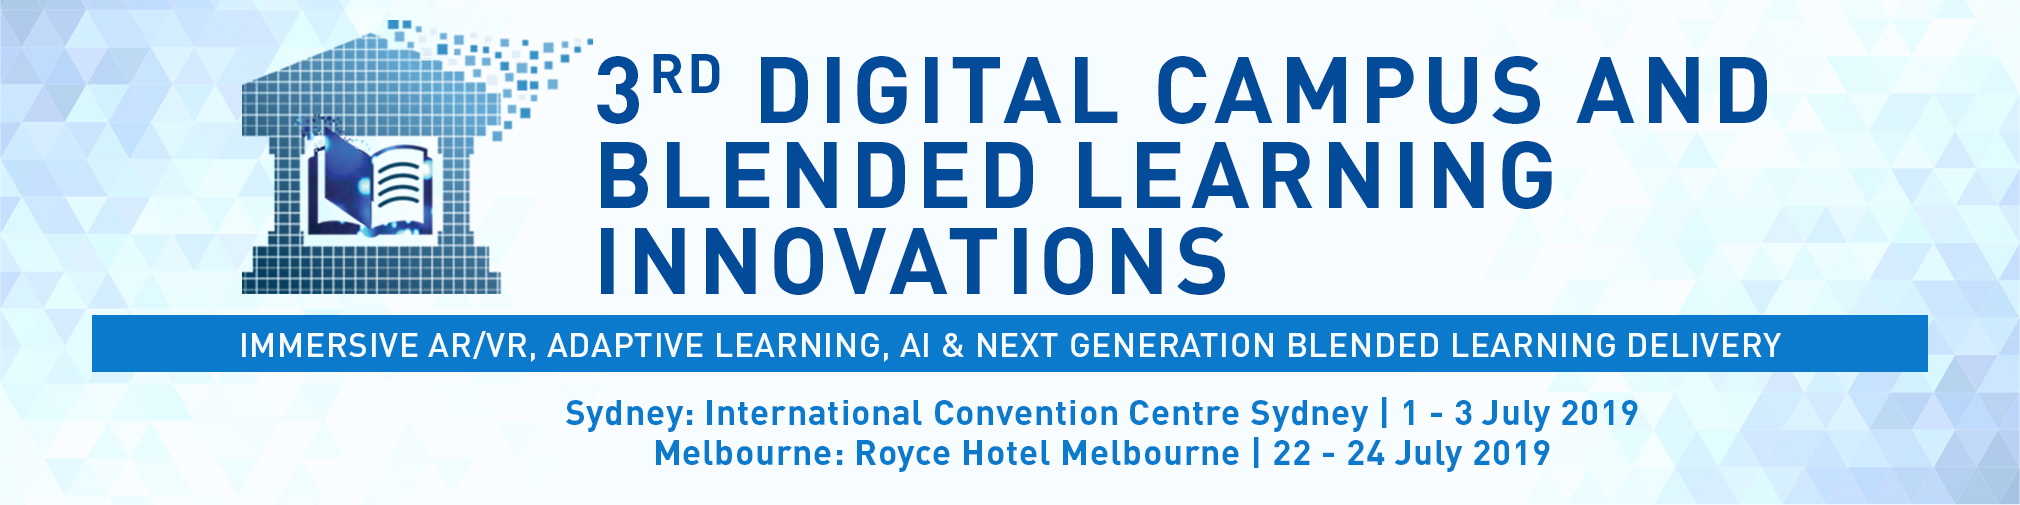 Agenda | 3rd Digital Campus and Blended Learning Innovations